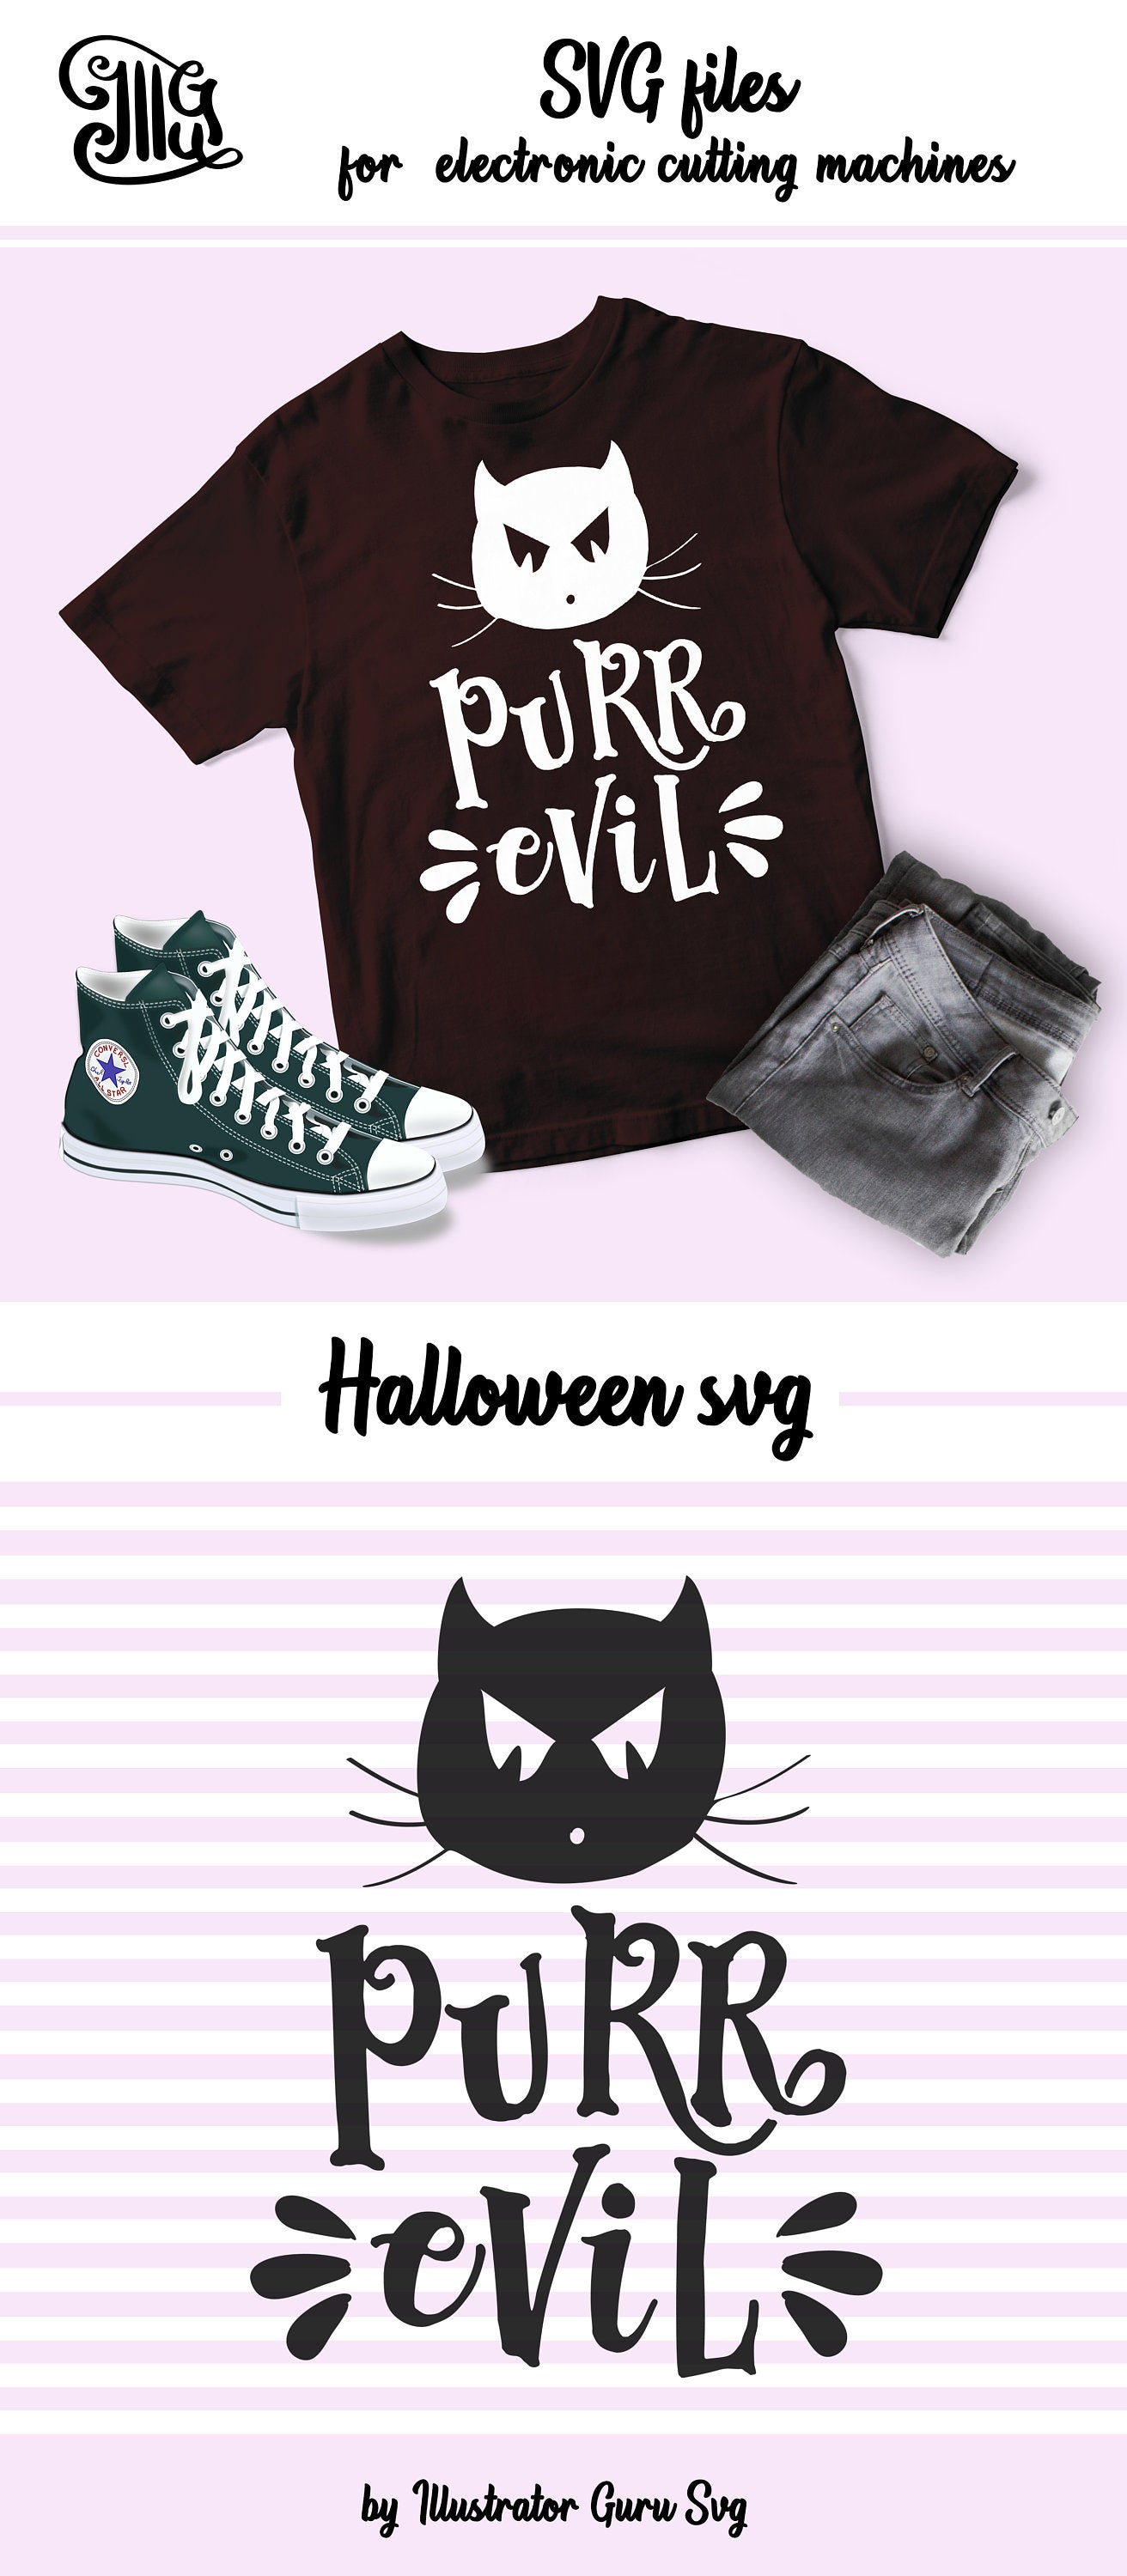 Funny Halloween svg, Purrr Evil svg, halloween girl svg, halloween cat svg, black cat svg, halloween girl sayings, halloween girl cut-by Illustrator Guru